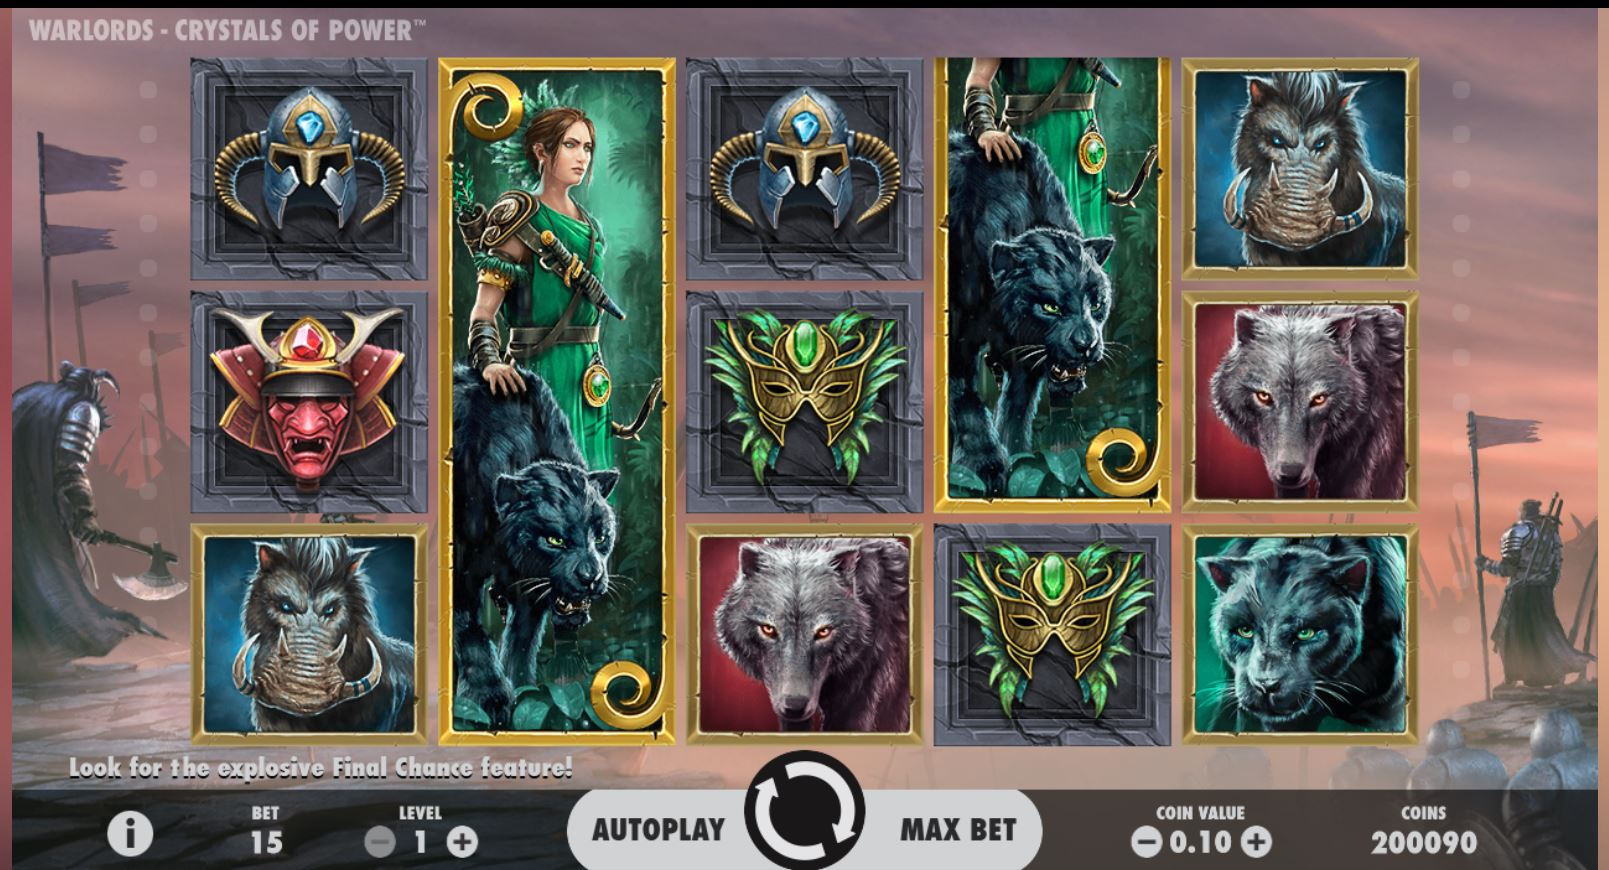 Warlords Crystal of Power Slot Game Symbols and Winning Combinations